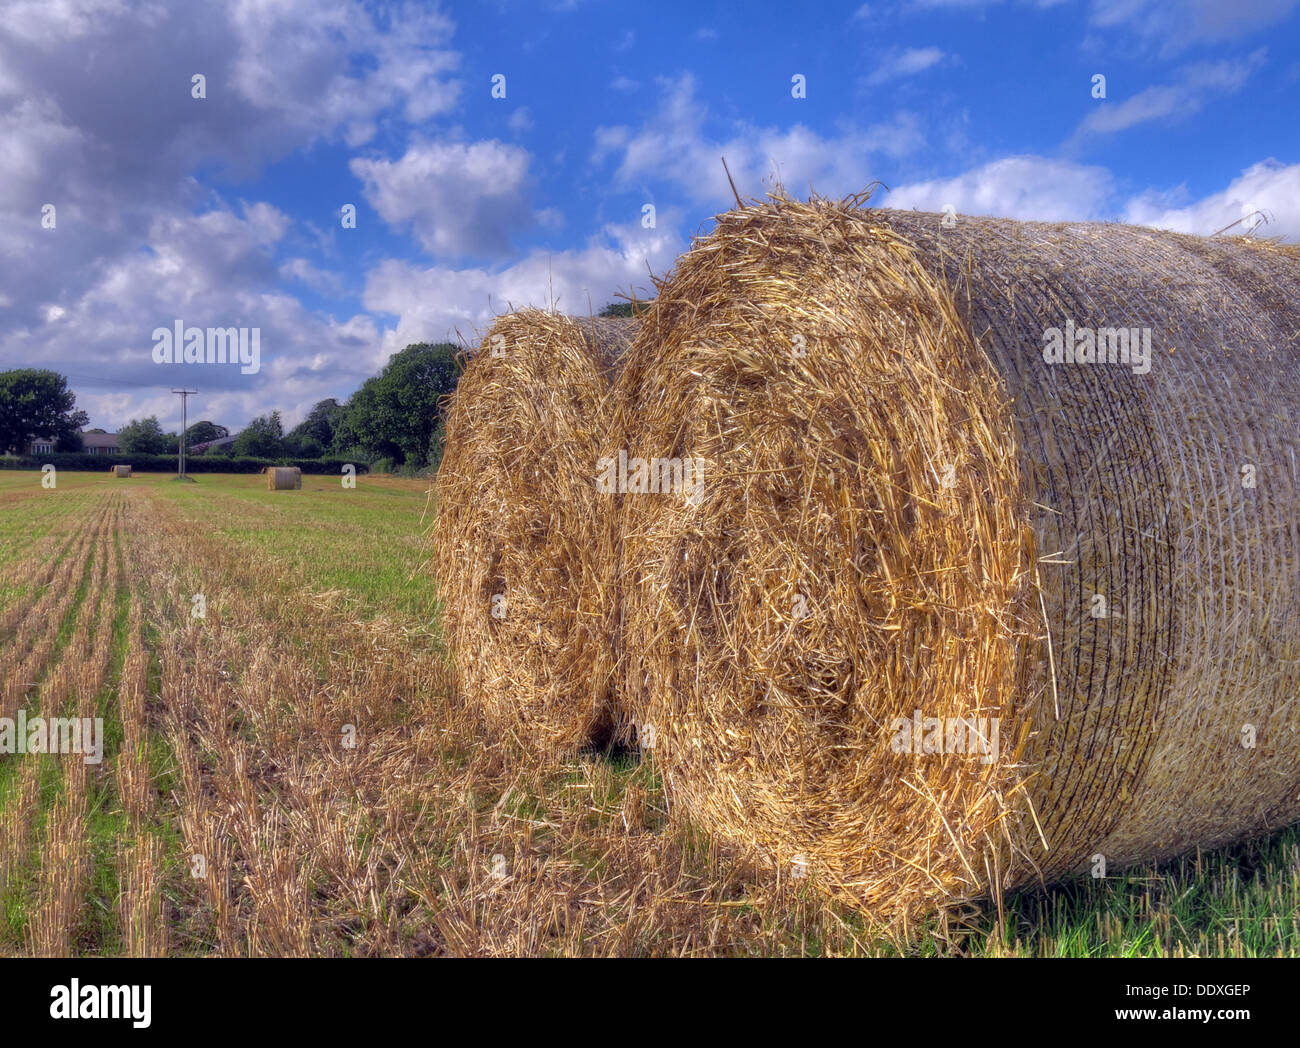 summer,sunshine,and,a,blue,sky,compact,bale,grass,grasses,animal,fodder,feed,pasture,or,rangeland,on,which,to,graze,an,animal,fresh,grass/alfalfa,hay,newly,baled,production,and,harvest,haymaking,doing,Hayfield,Hayfields,spring,fodder,gotonysmith fields,Buy Pictures of,Buy Images Of